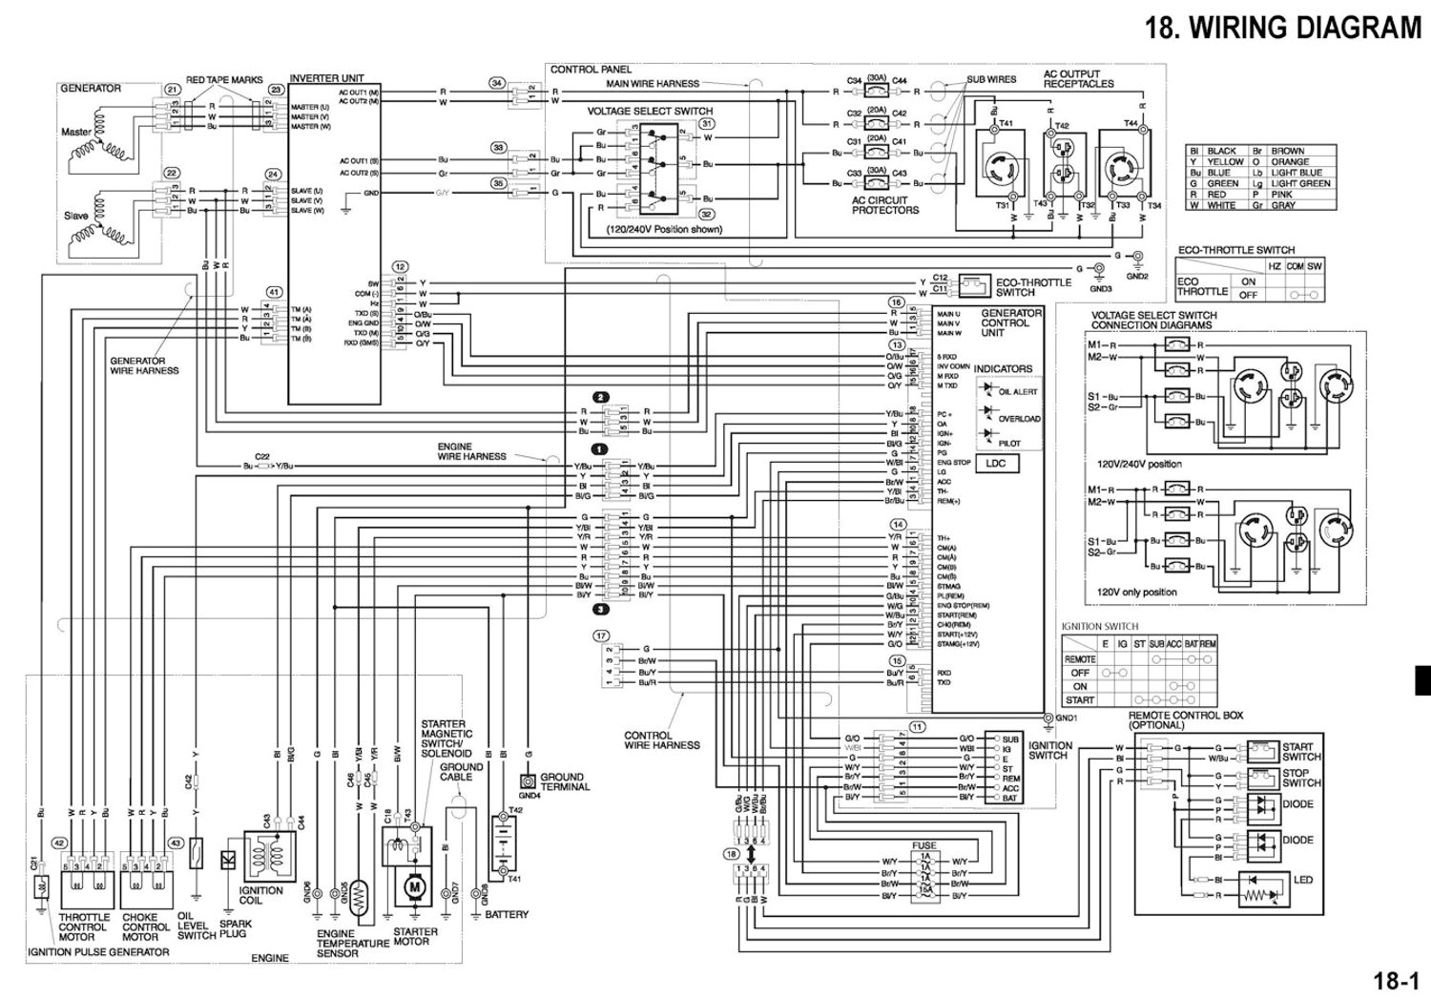 Wiring diagram for honda ev generator